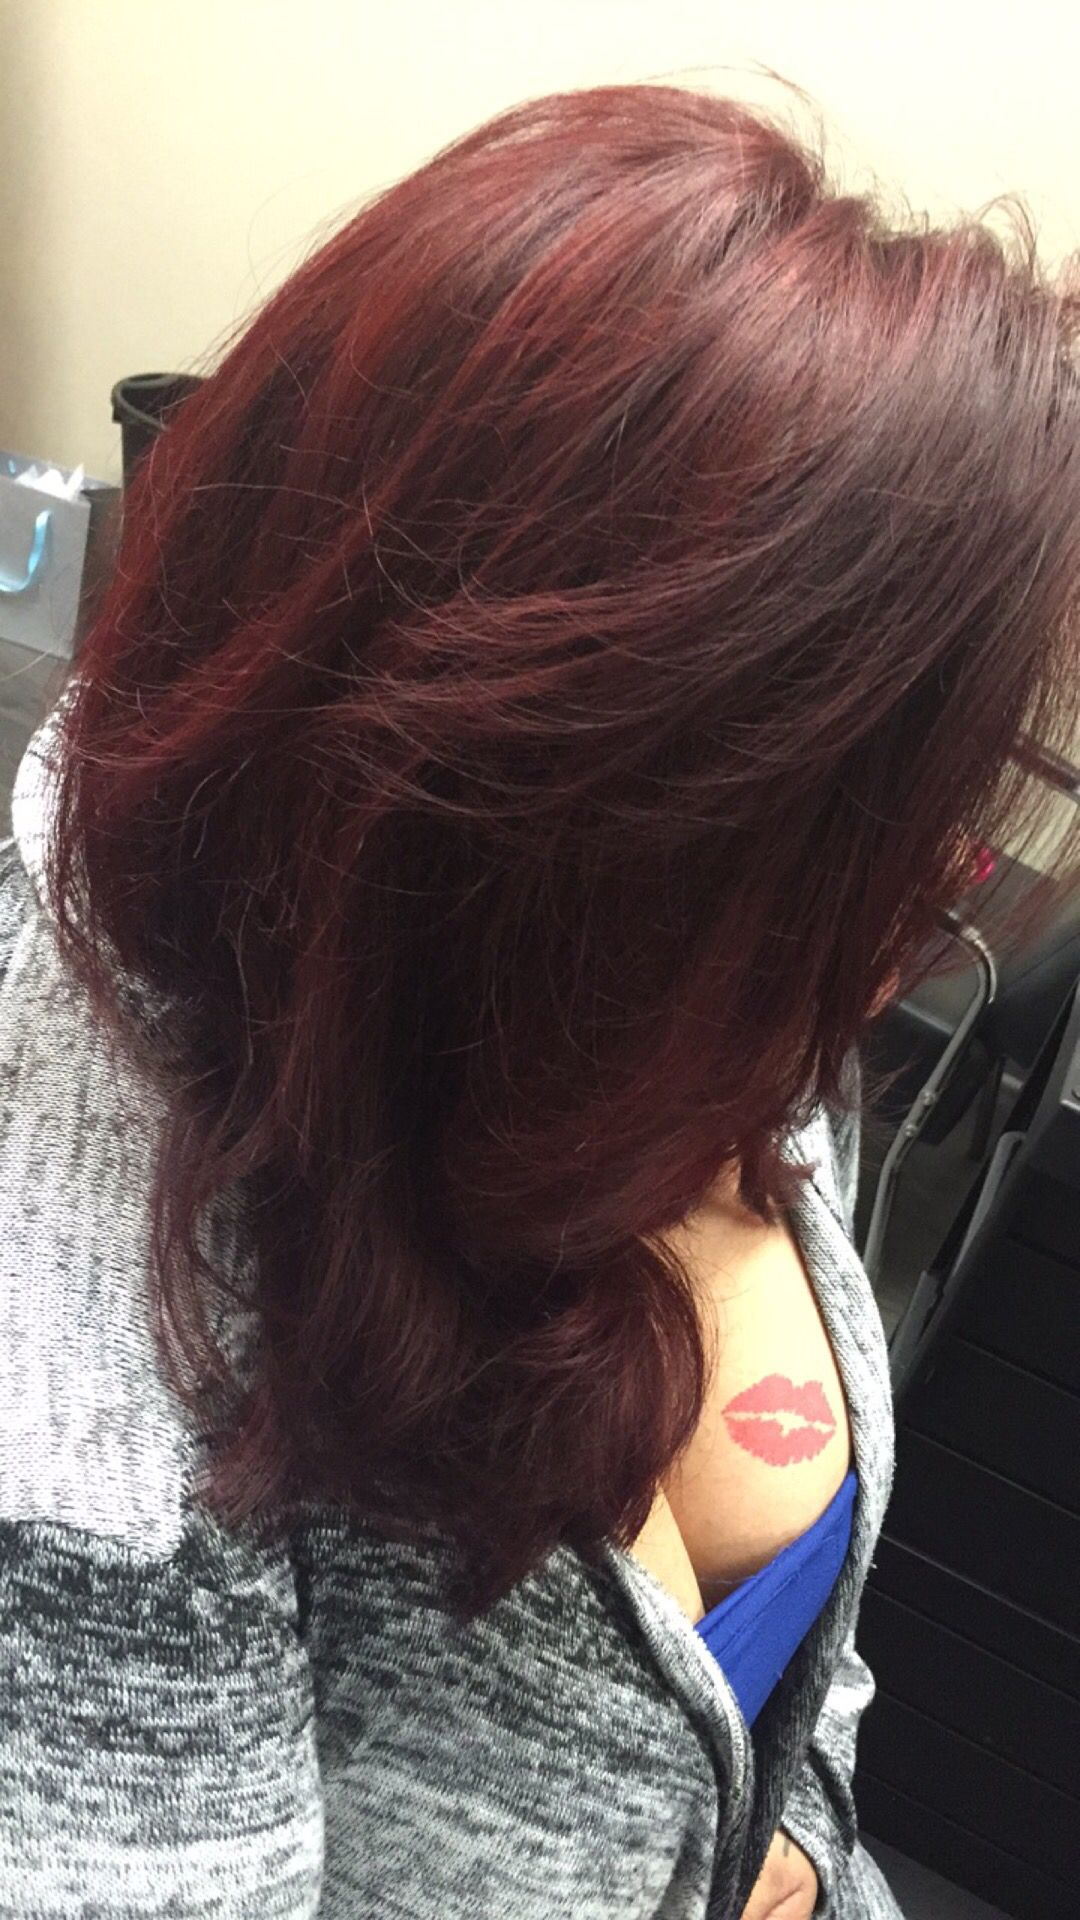 Reds have more fun love is in the hair